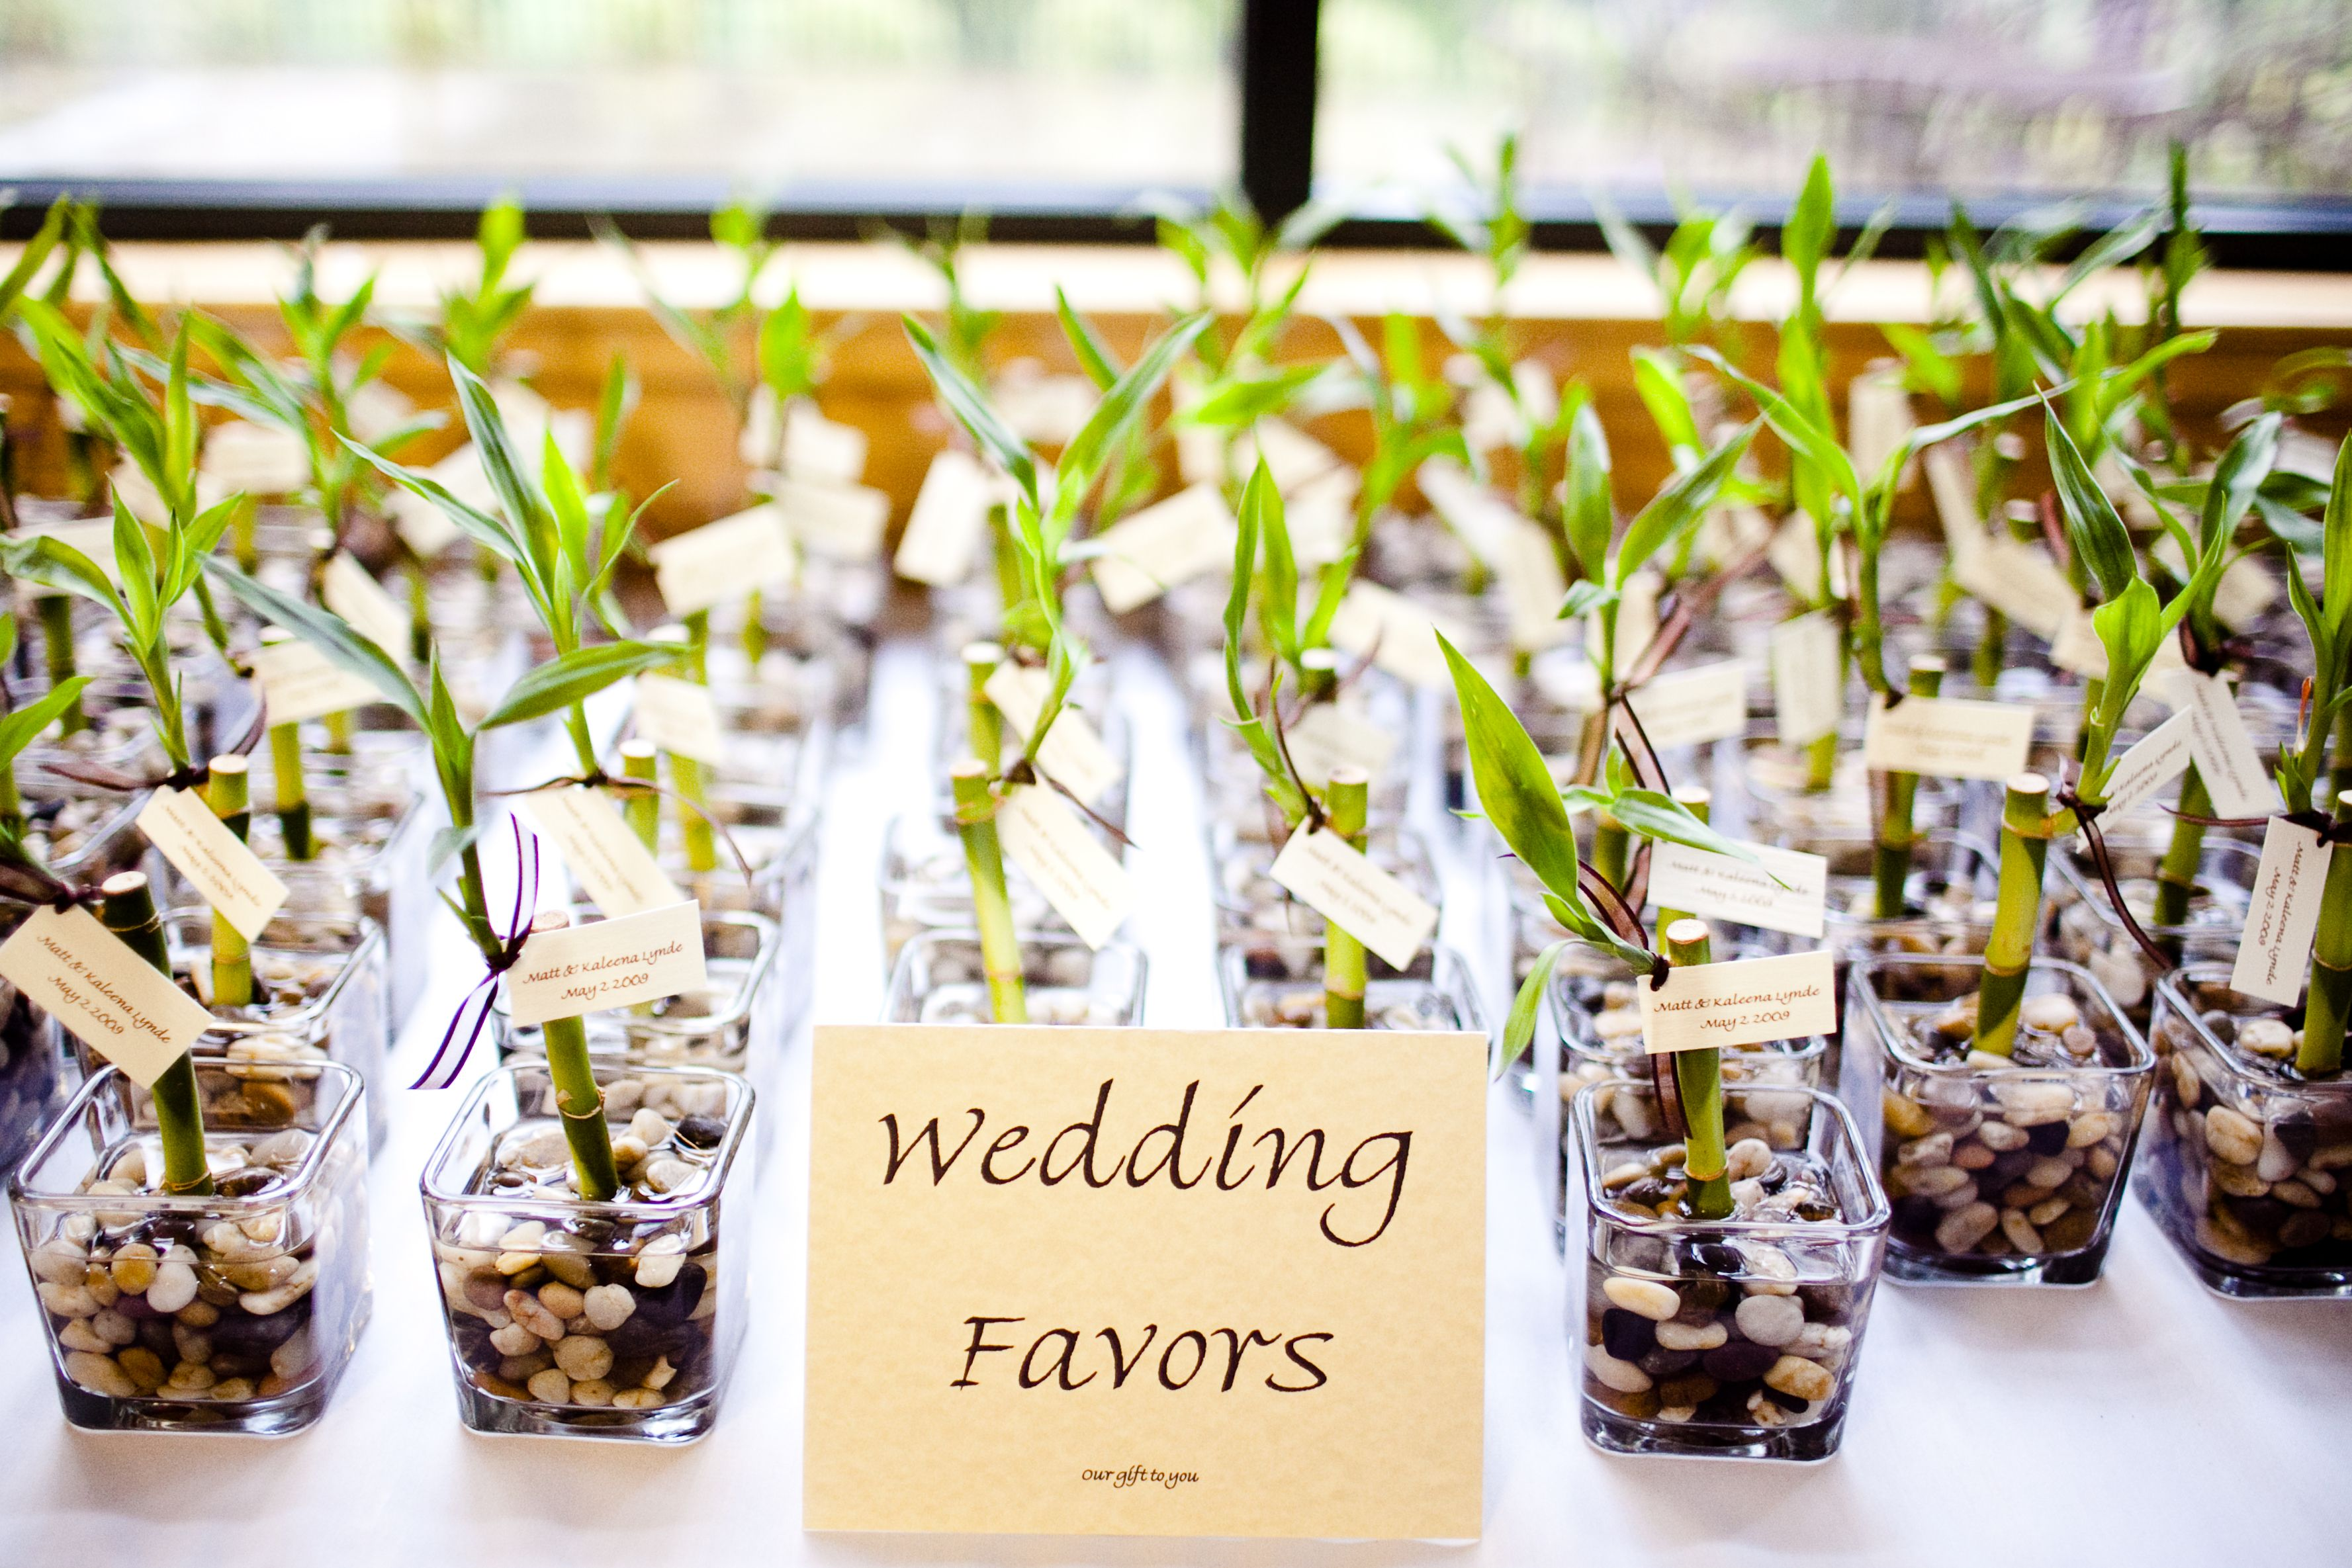 Wedding Gifts Buy Online: Wedding Favors, I Got Box's Of 10 Square Vases For 5